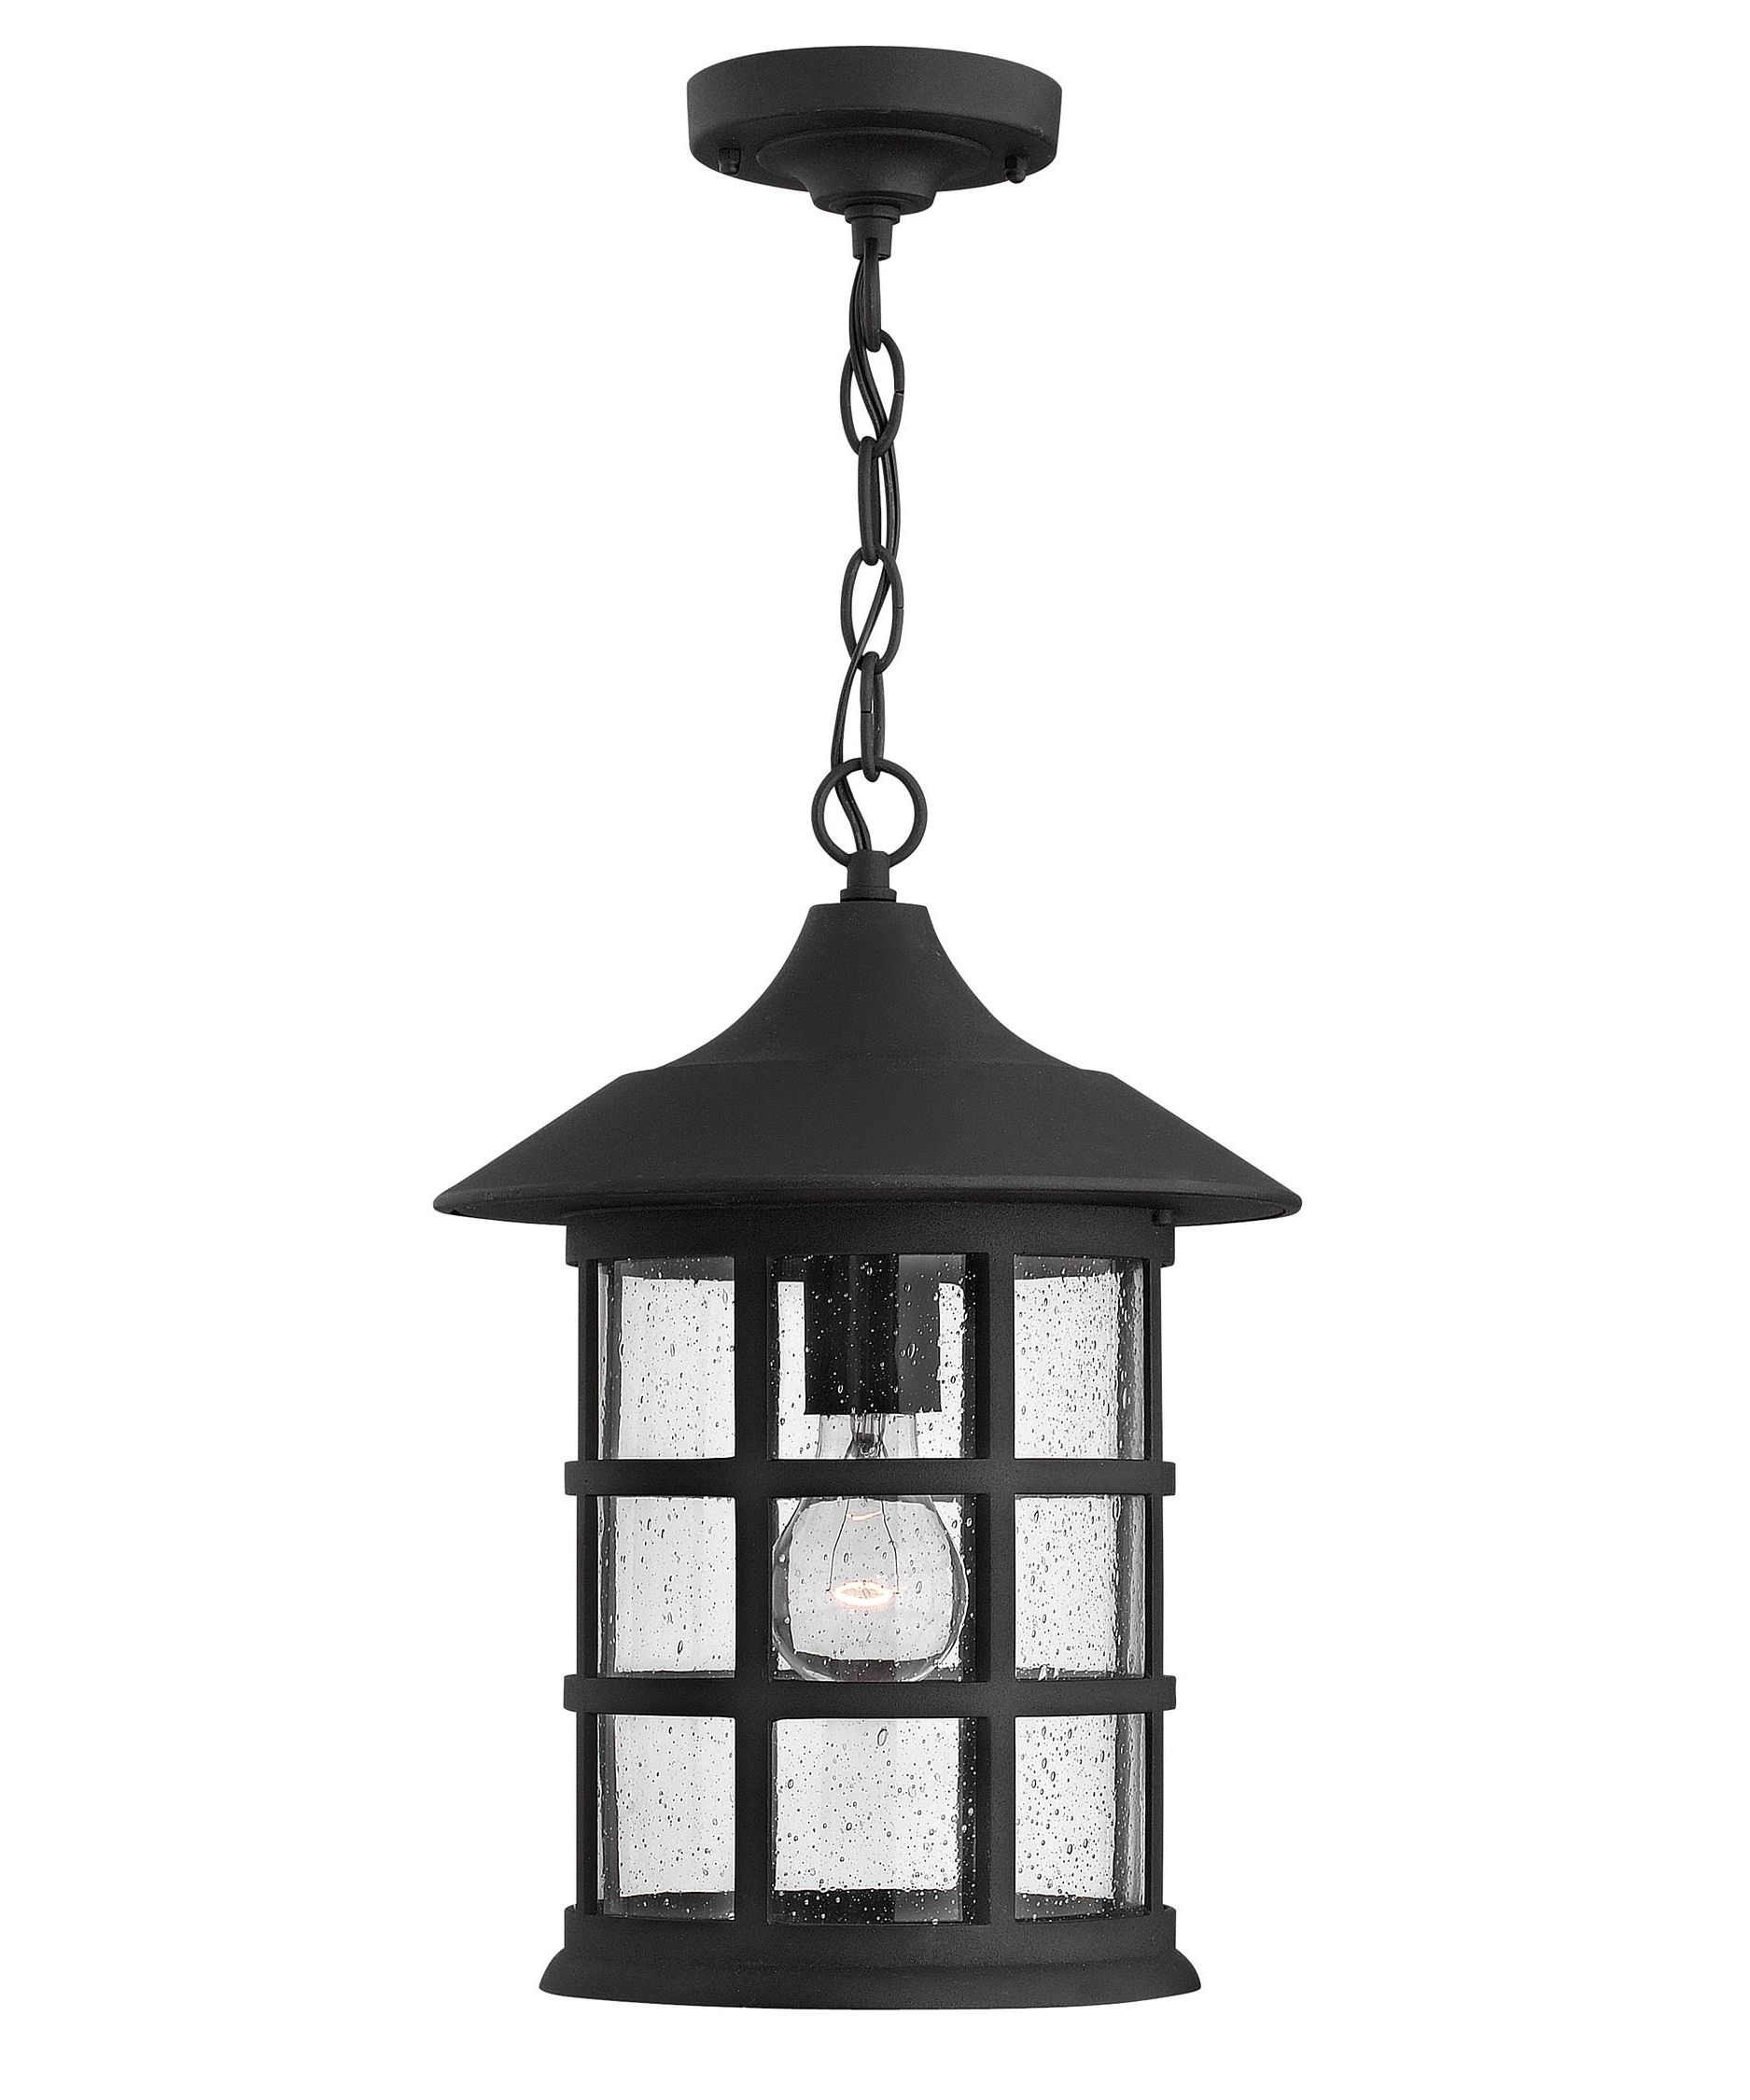 Hinkley Lighting 1802 Freeport 10 Inch Wide 1 Light Outdoor Hanging Within Latest Hanging Porch Hinkley Lighting (View 13 of 20)